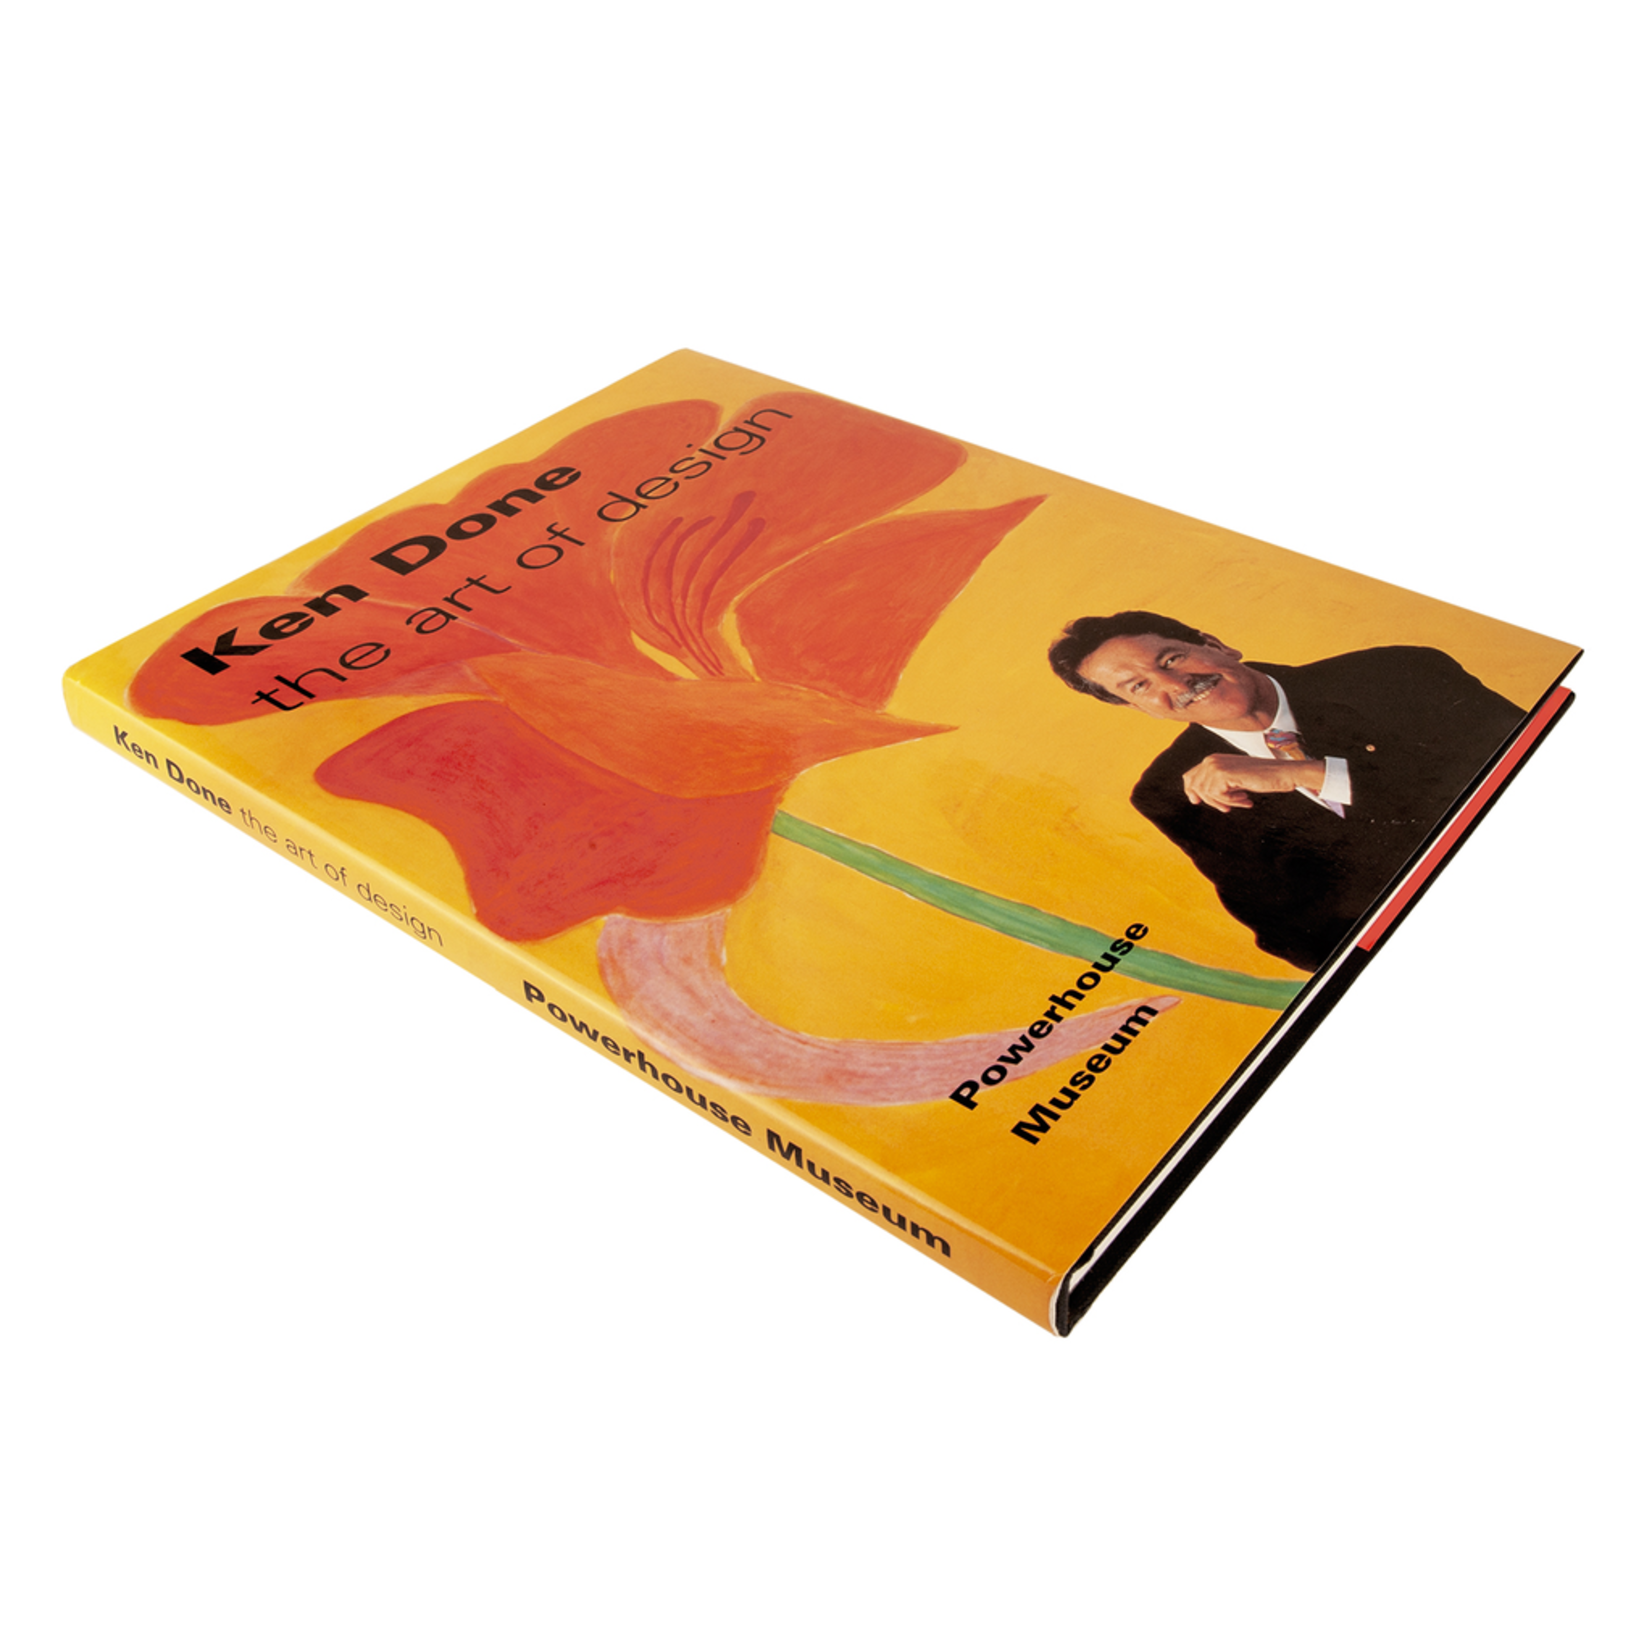 Books & Stationery Book - Ken Done: The Art of Design Book